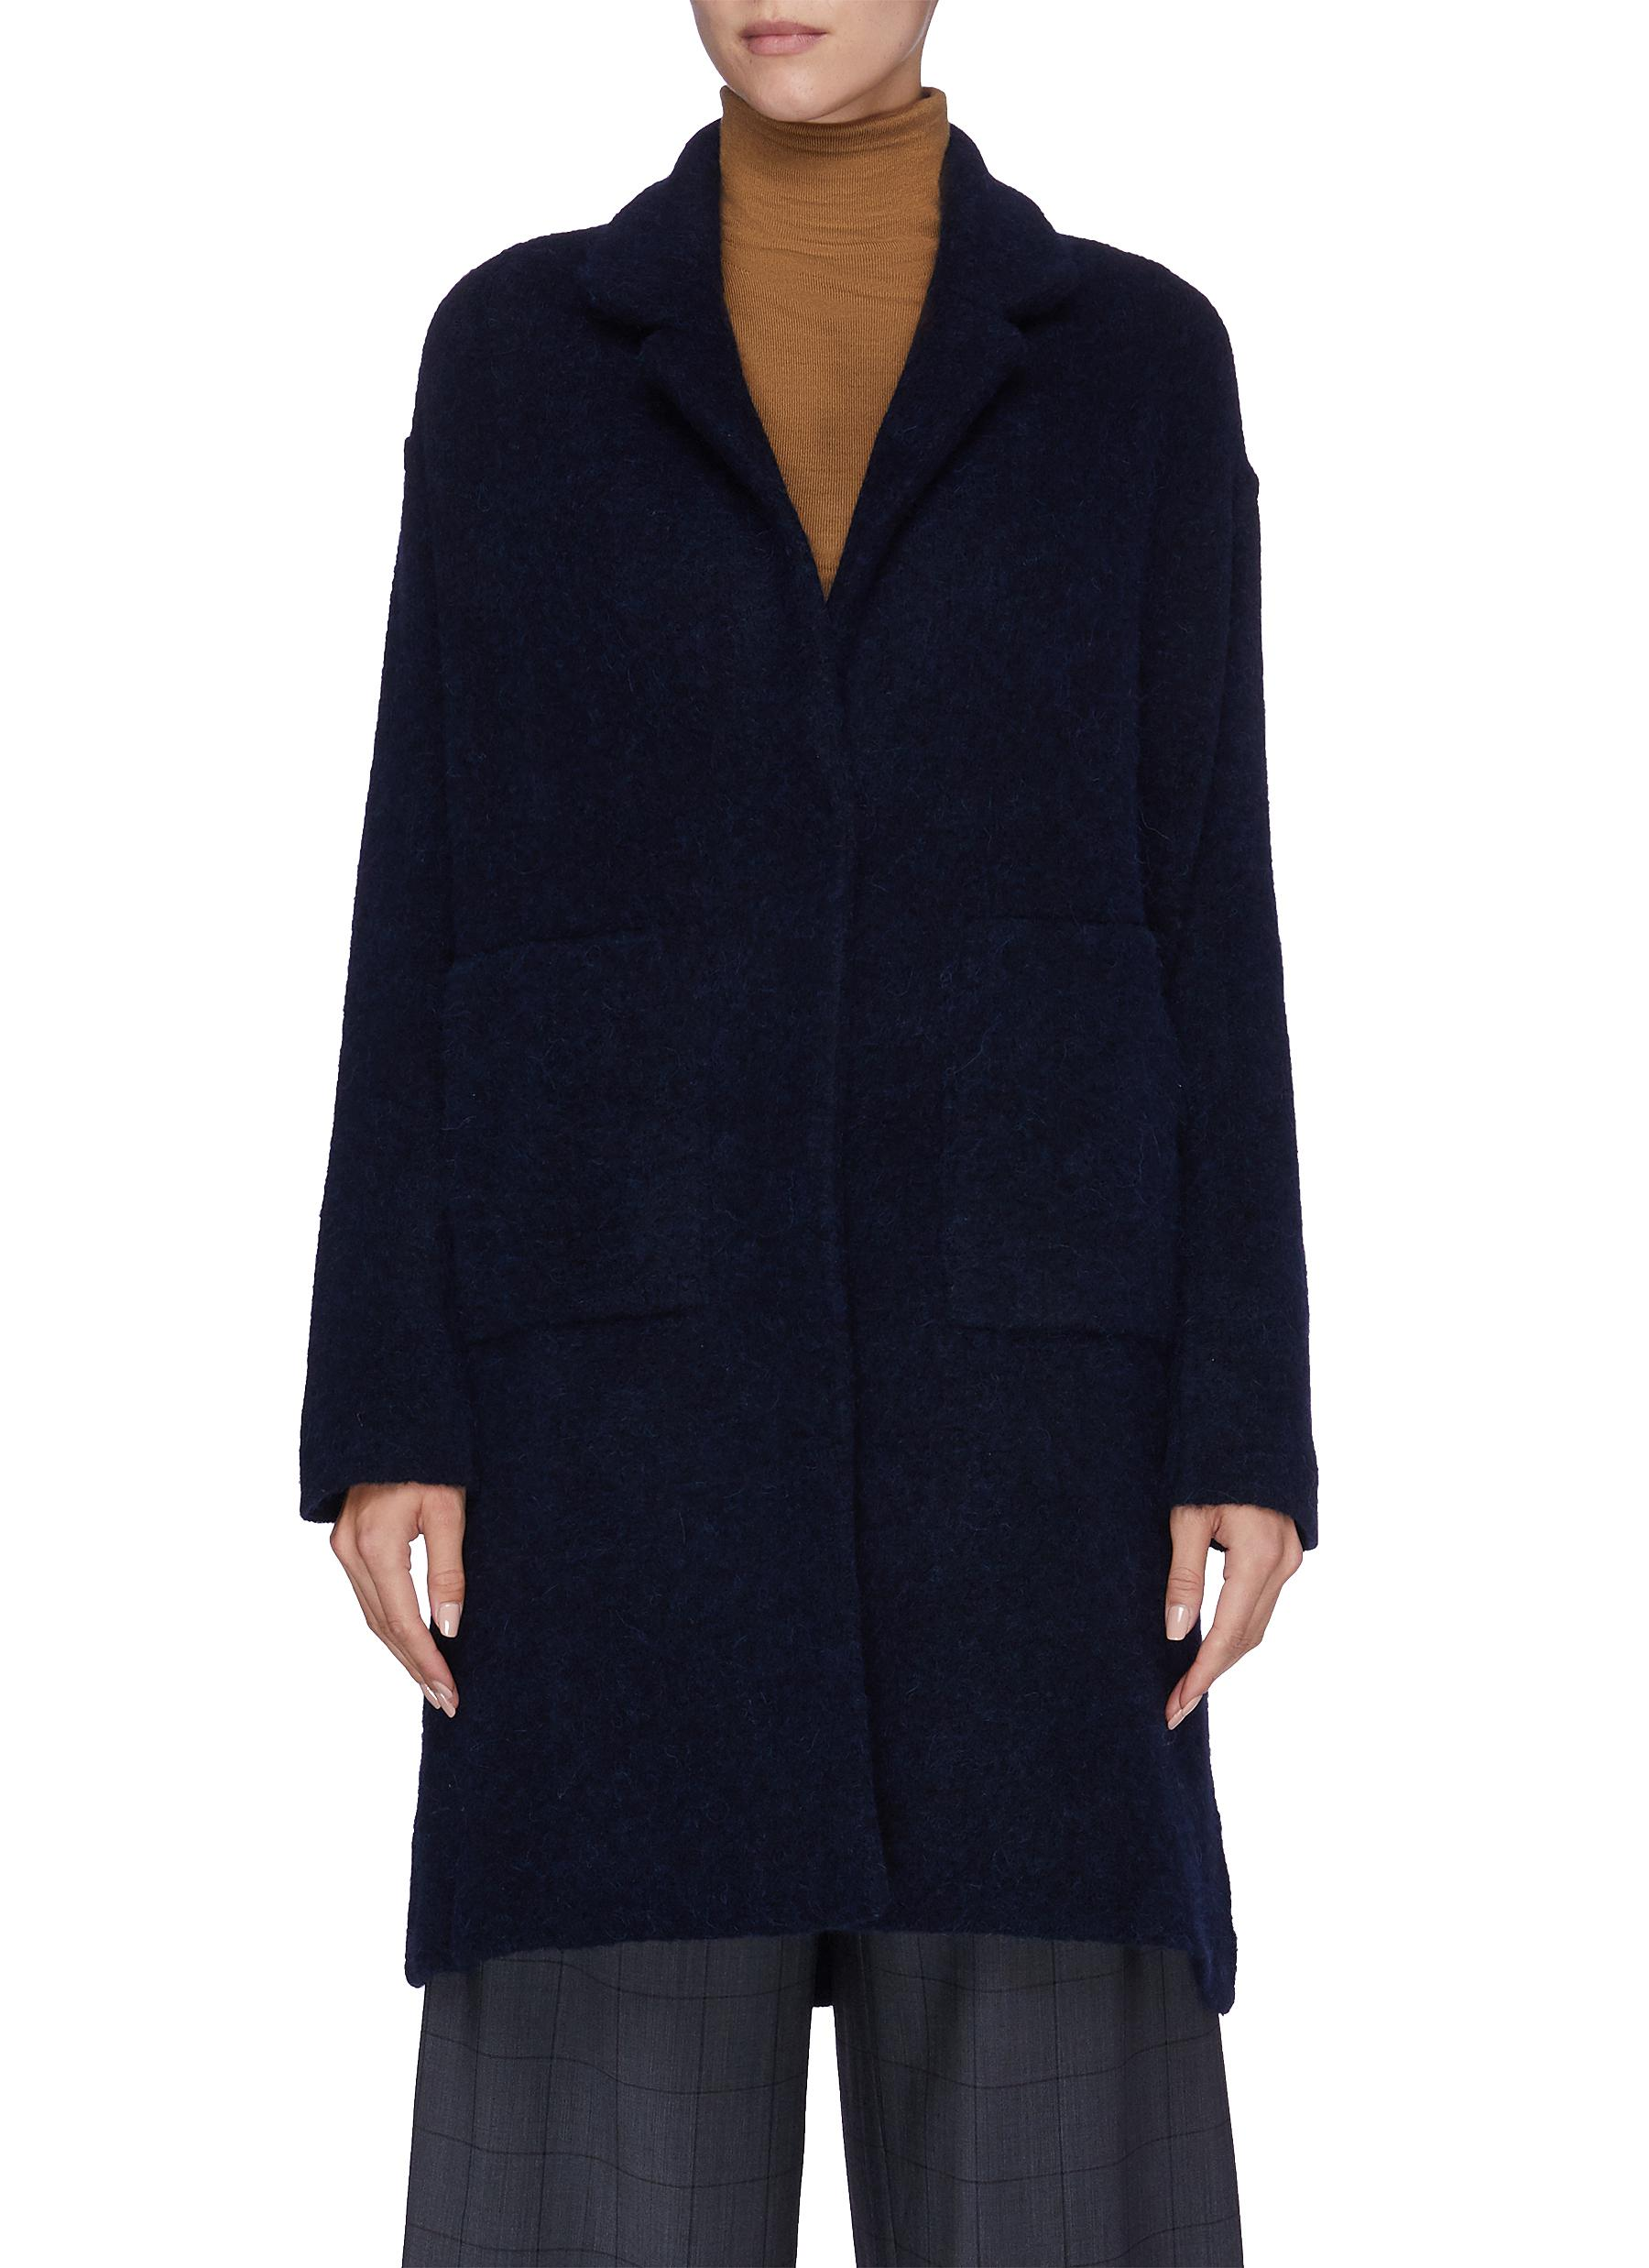 Notch lapel long cardigan by Vince